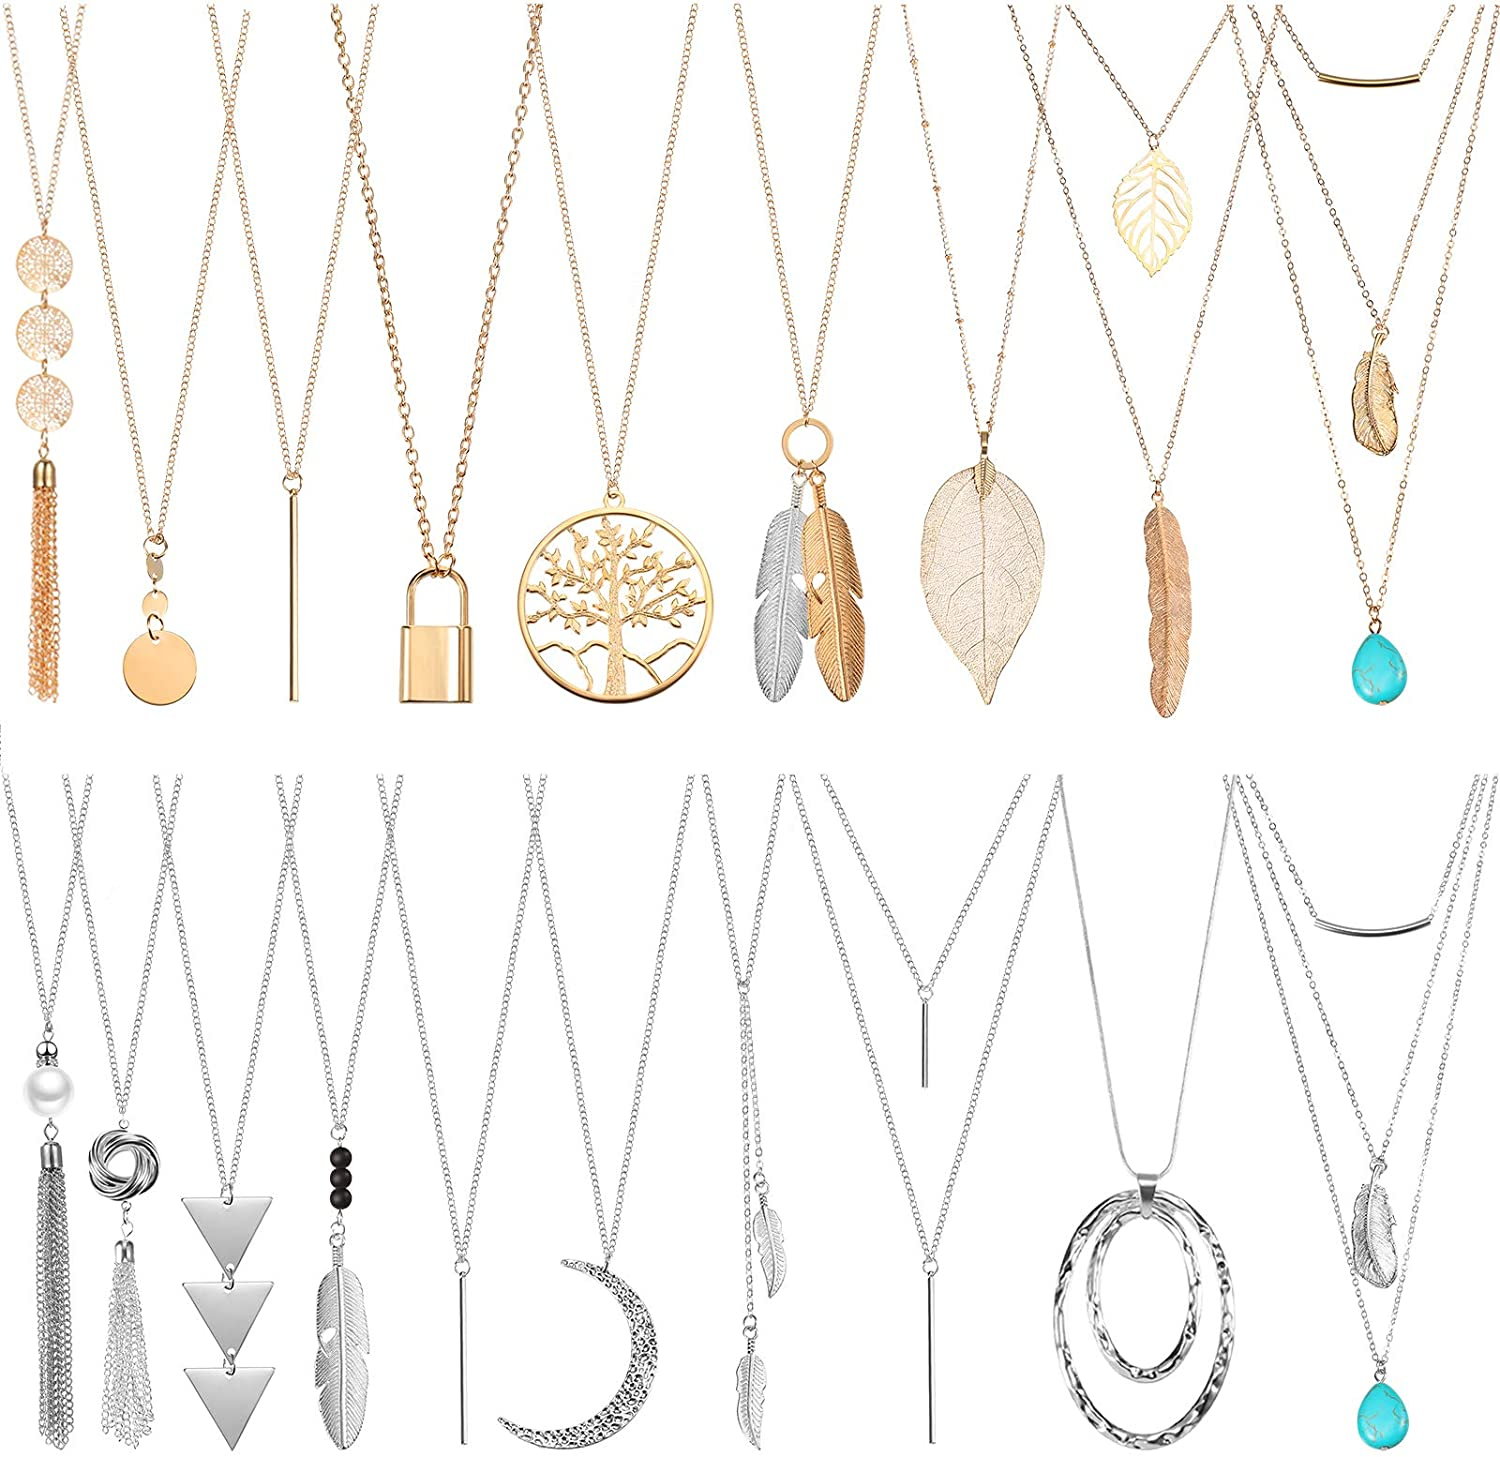 20 Pieces Valentine's Day Long Pendant Necklace Y Tassel Leaf Circle Bar Necklace Simple Bar Layer Tassel Y Charm Necklace Set for Women Girls